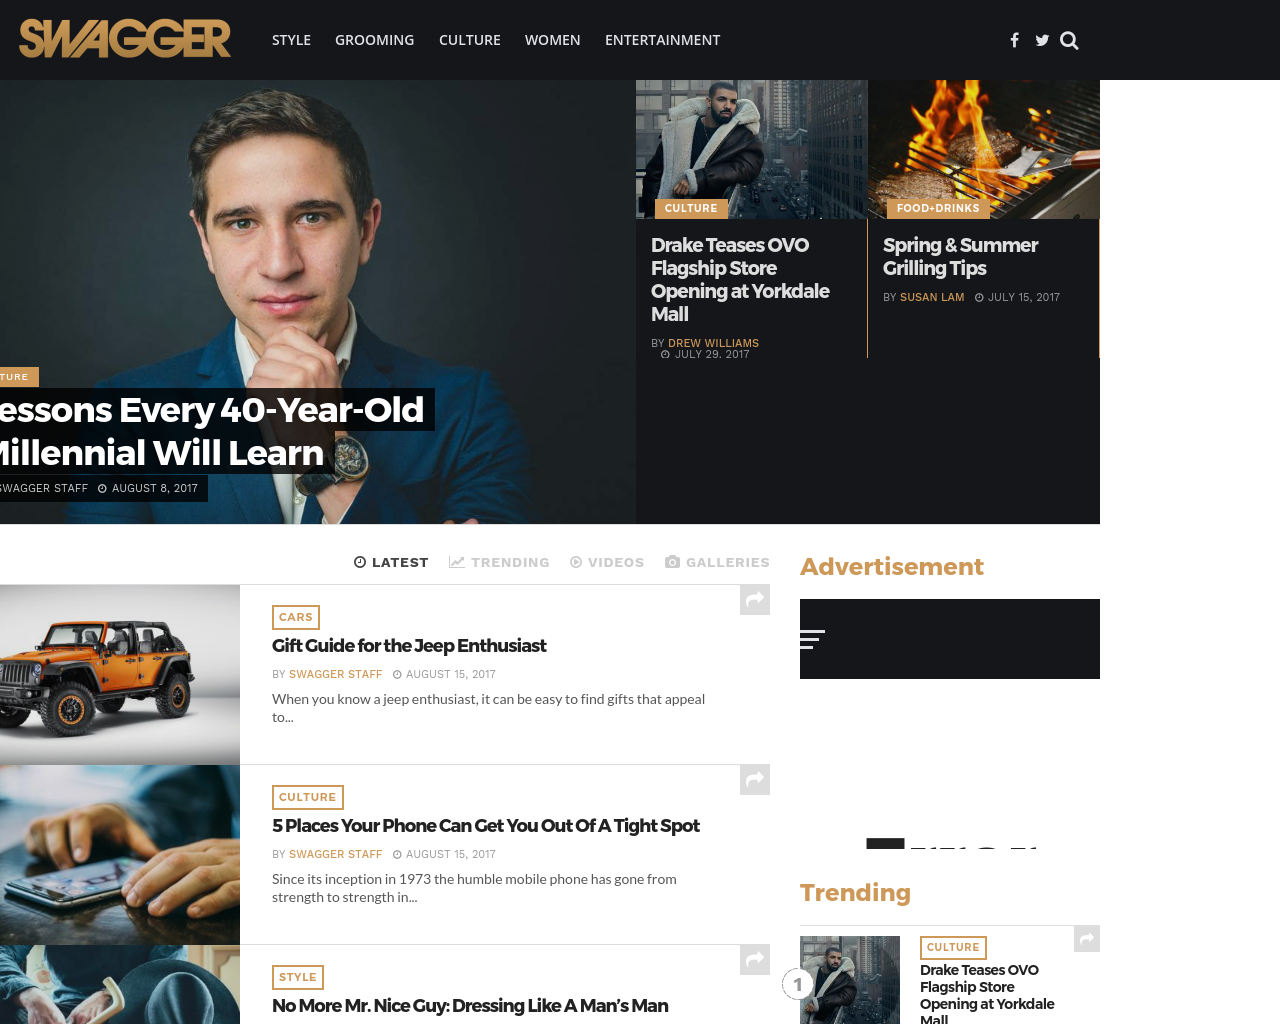 Swagger-Magazine-Advertising-Reviews-Pricing